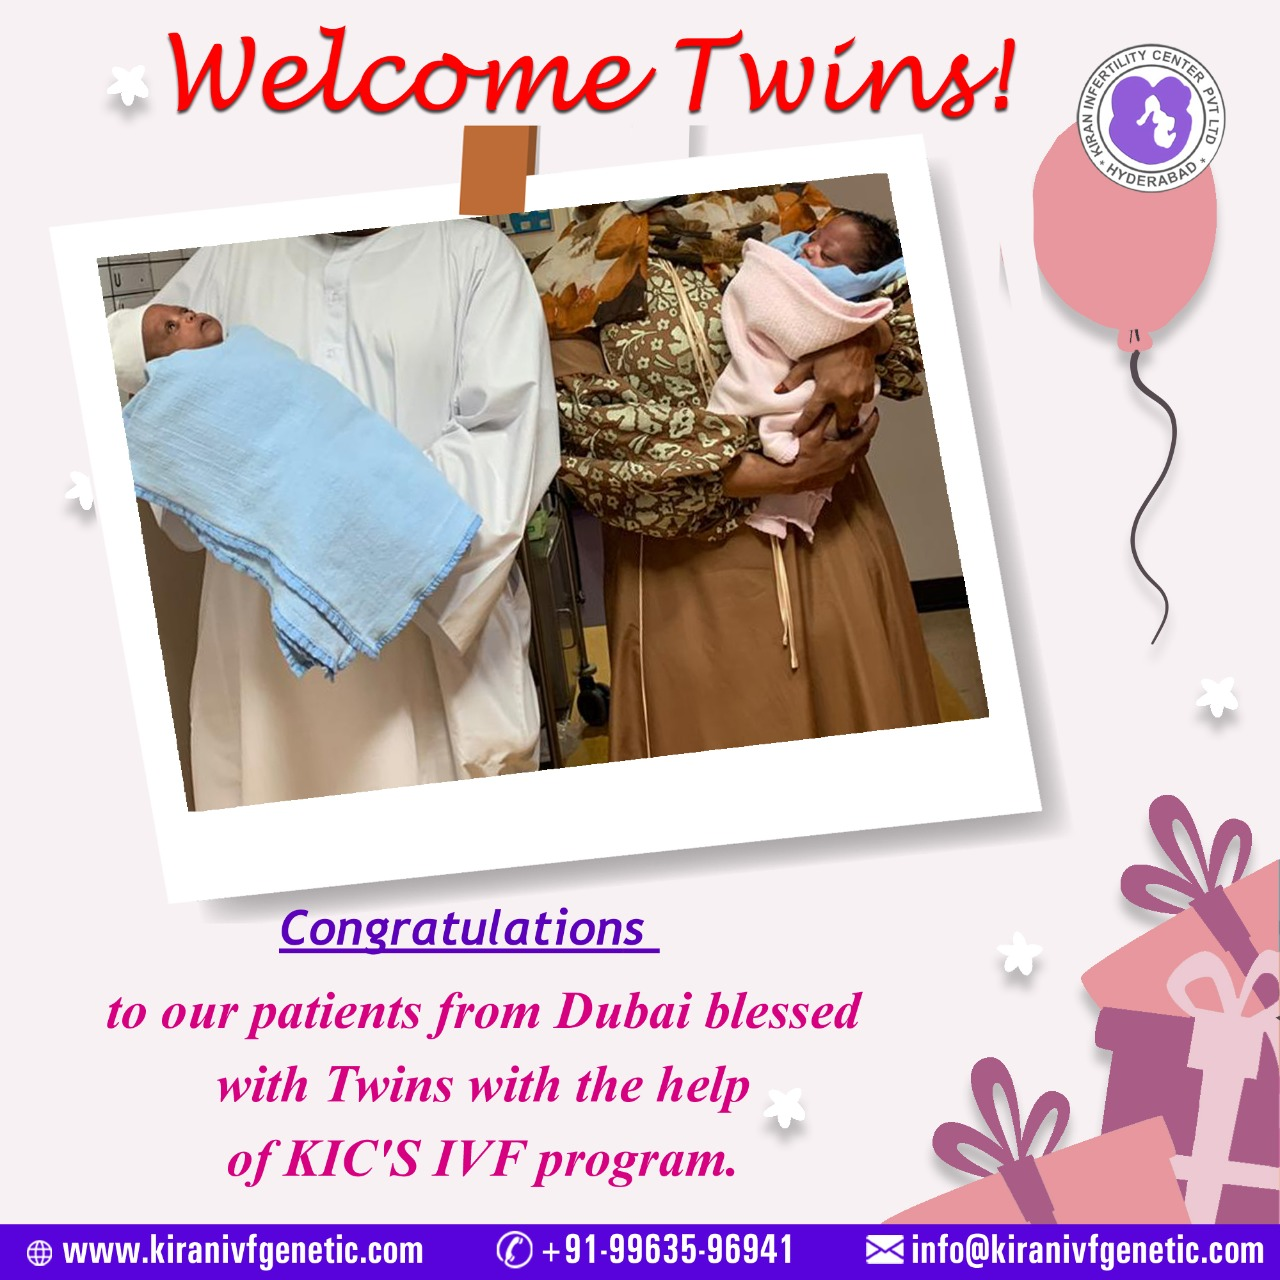 Dubai blessed with Twins